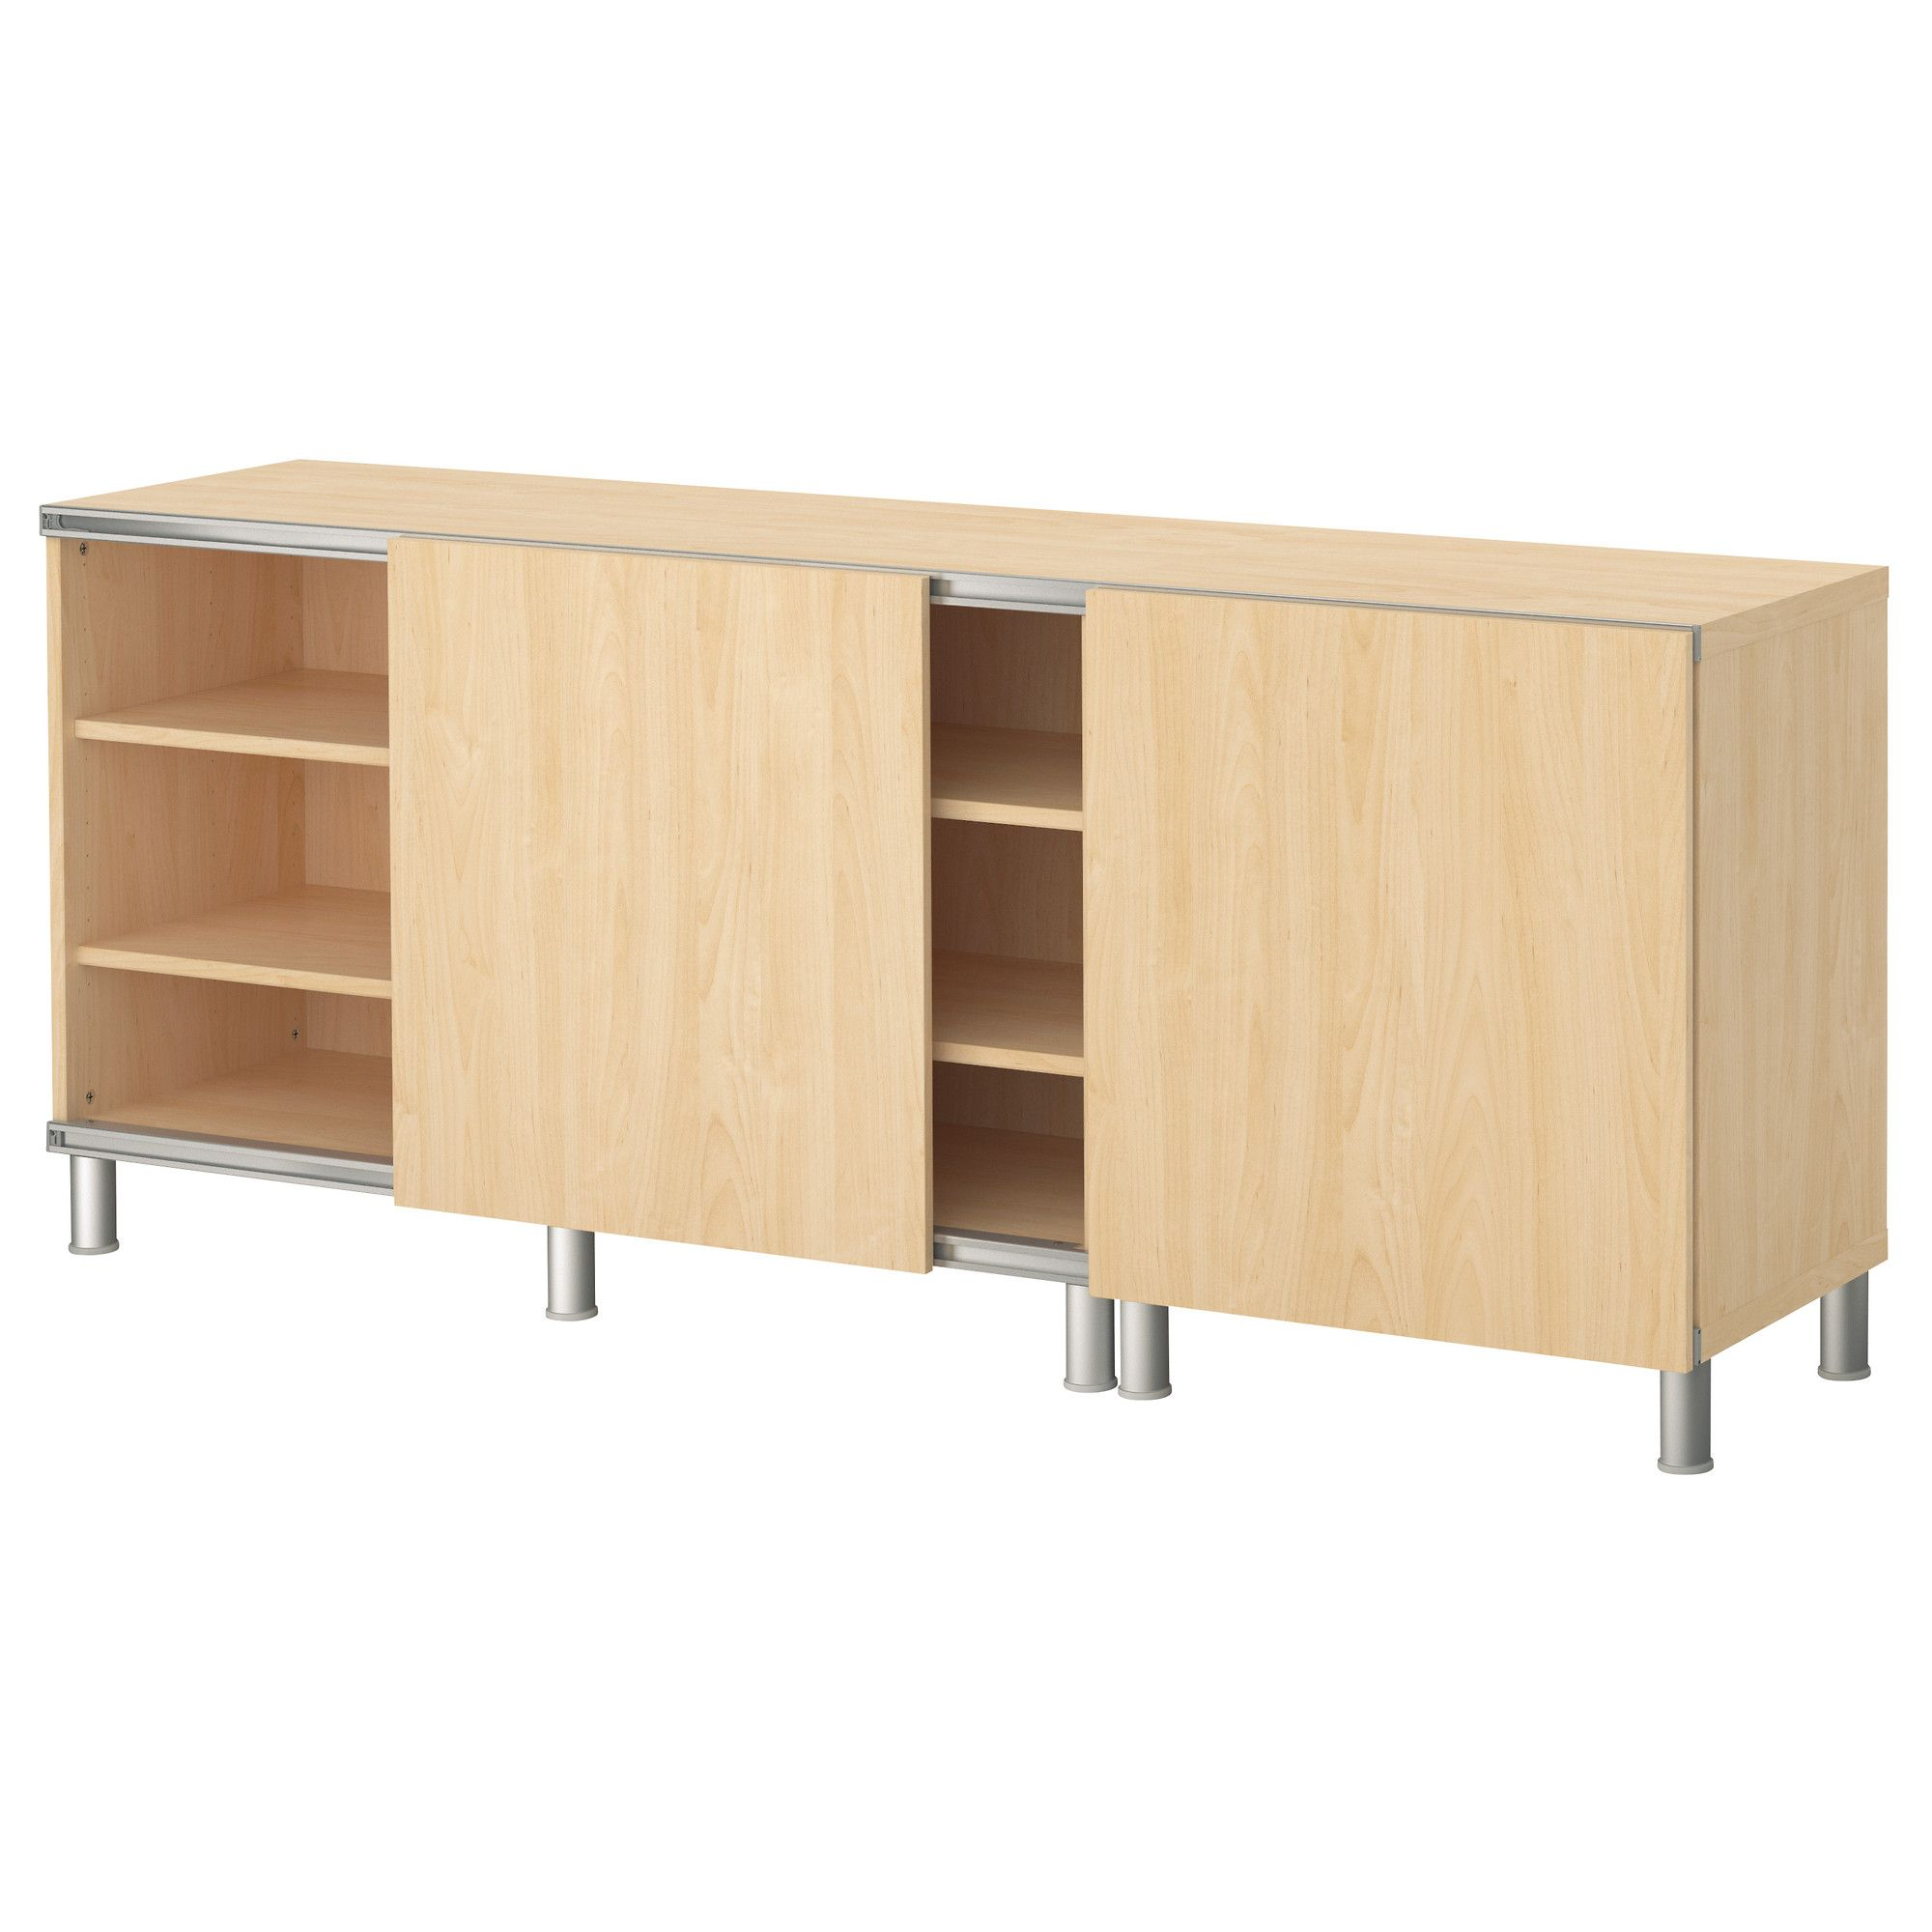 Table coulissante ikea best table basse salon ikea coffee - Table coulissante ikea ...